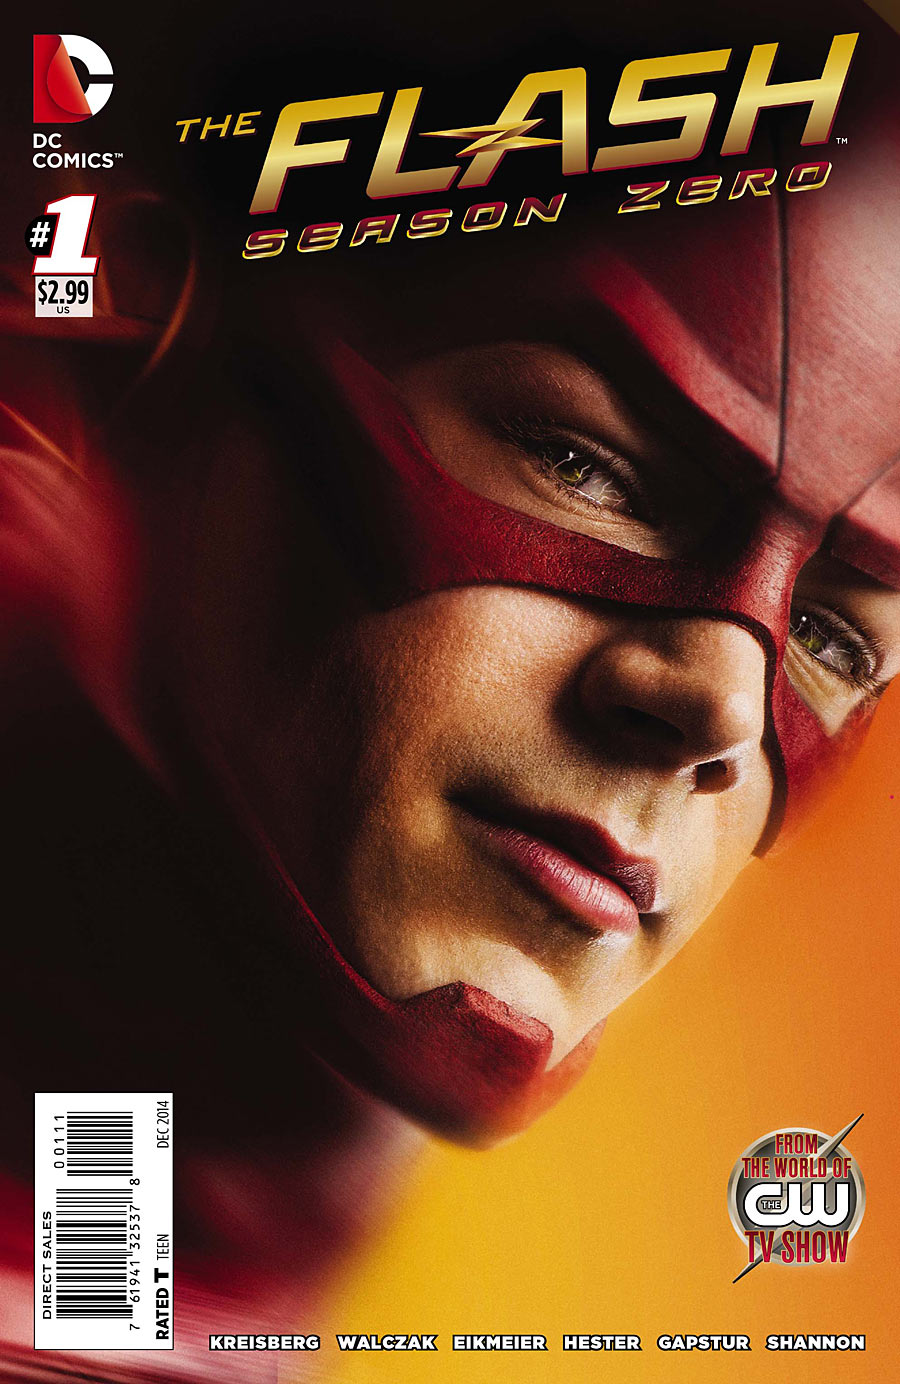 The Flash: Season Zero Vol 1 1